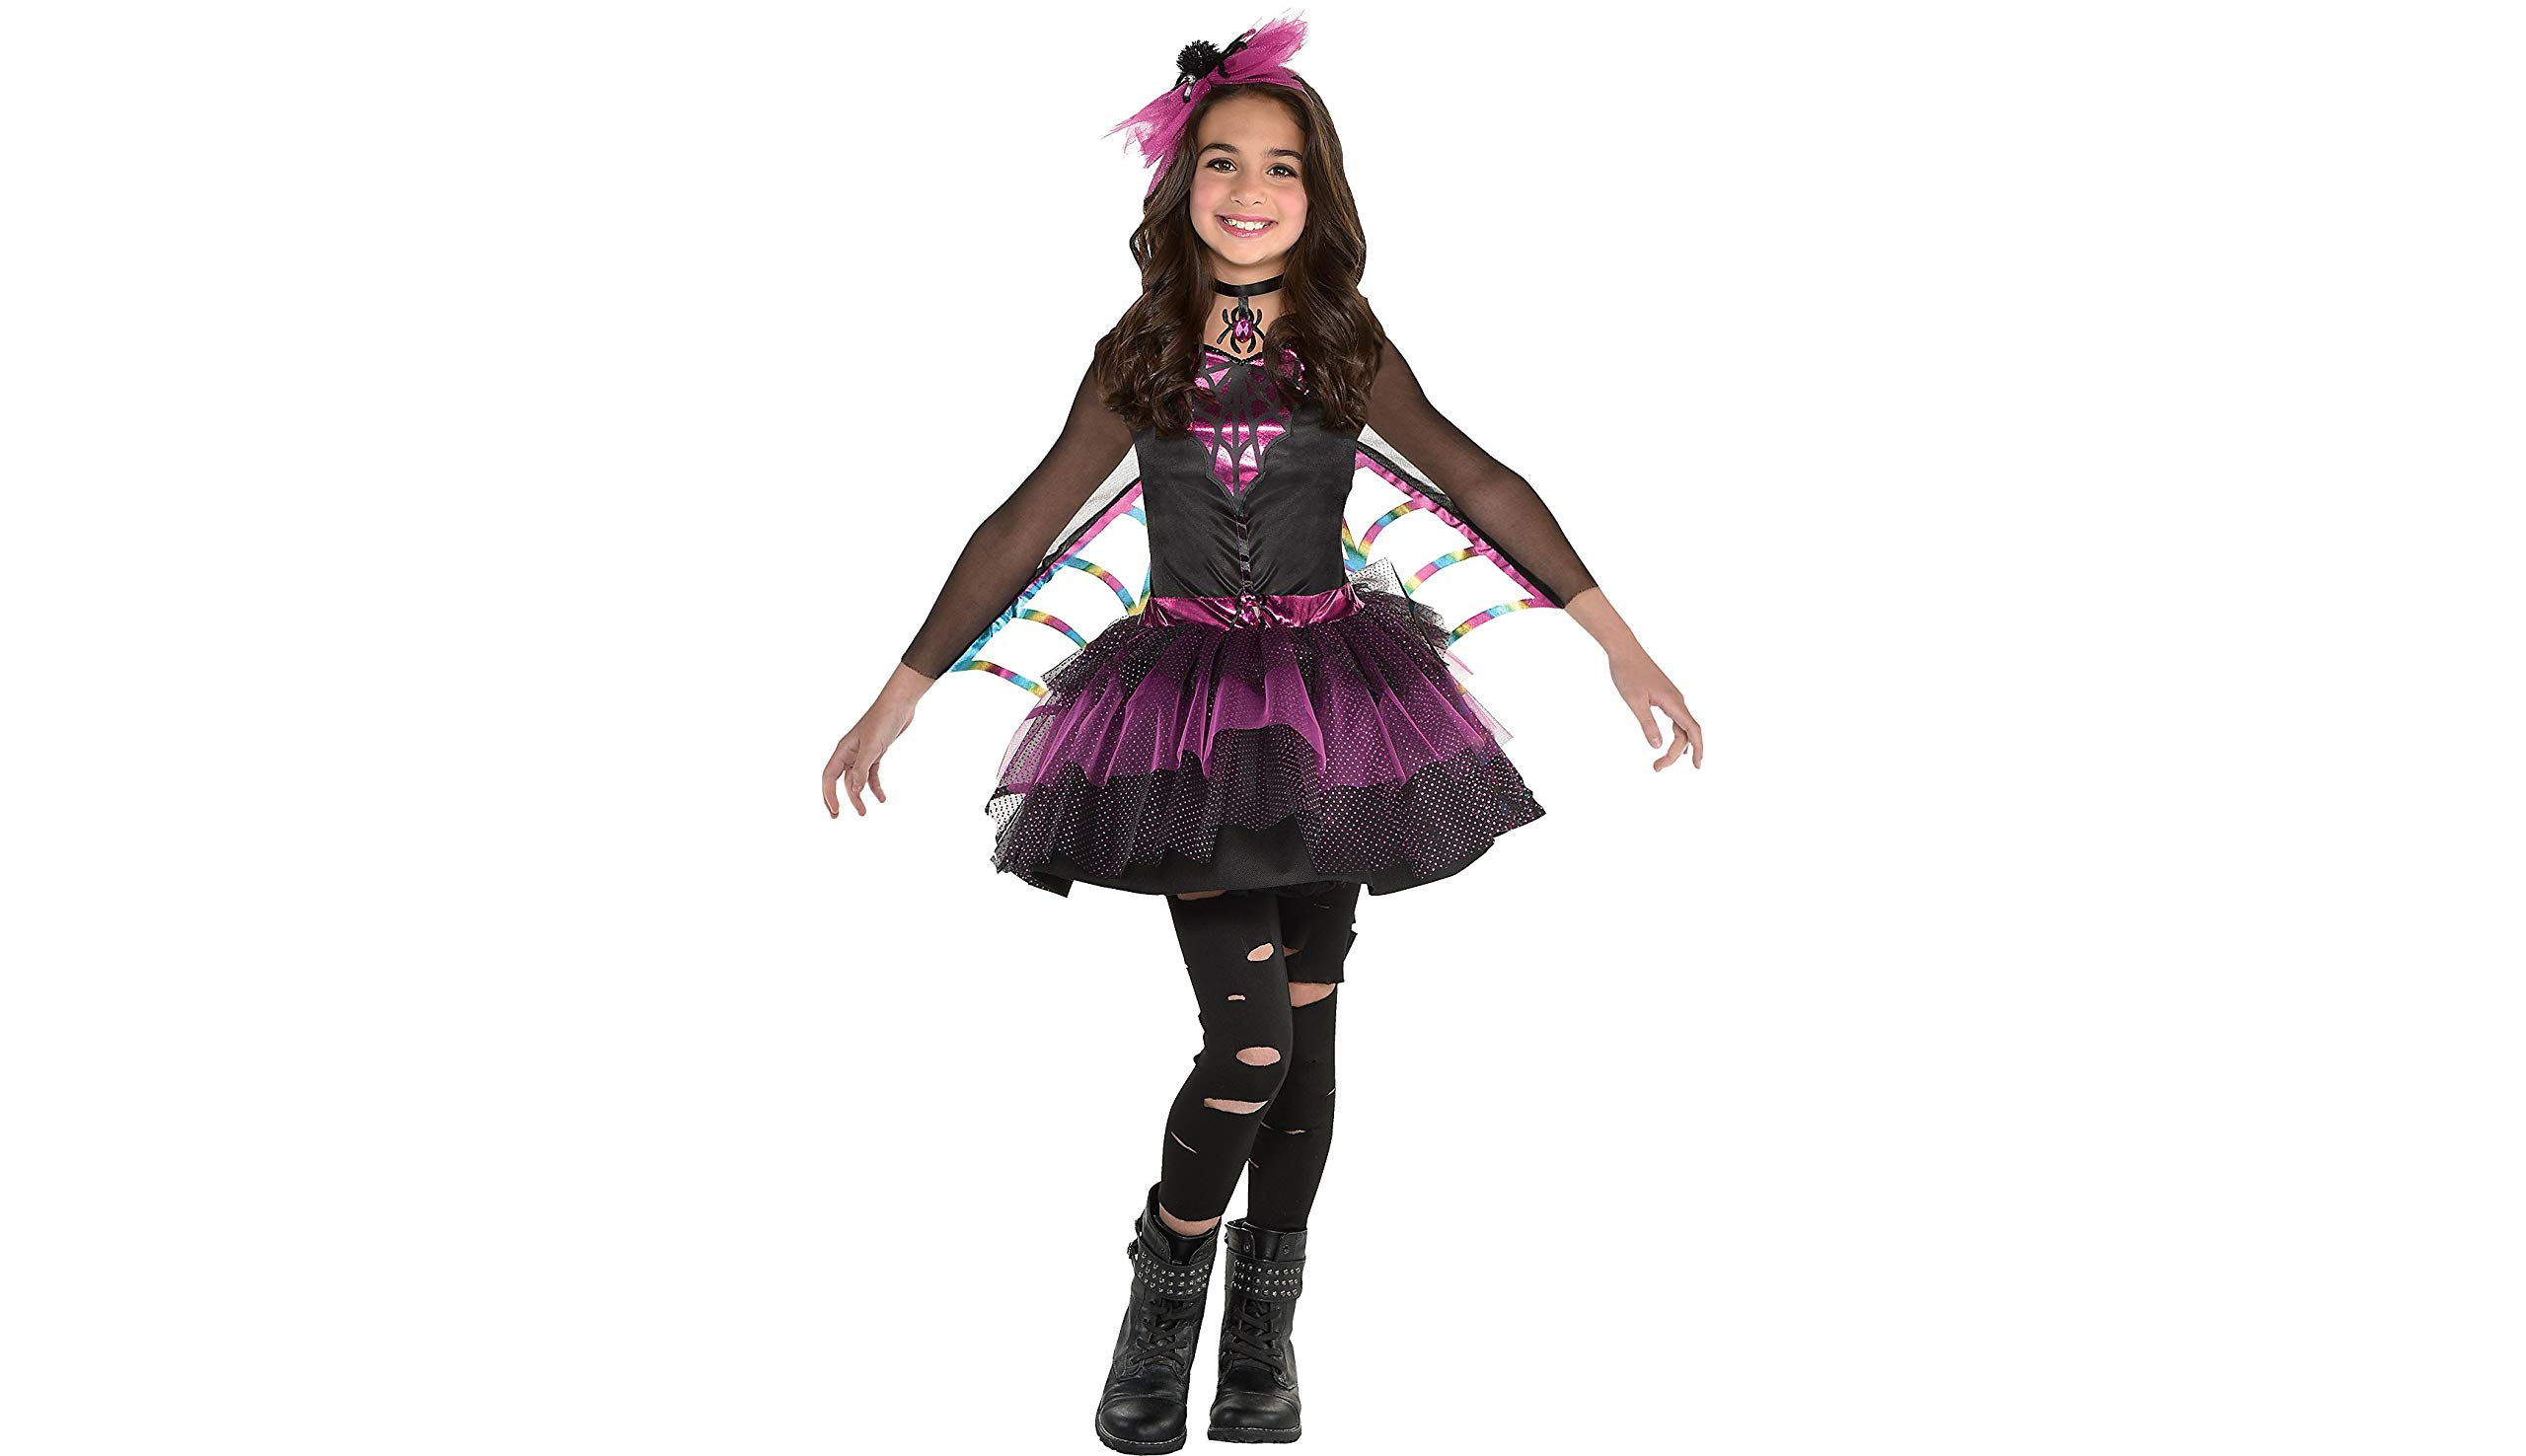 - 711JeCajNtL - Spider Dress Halloween Costume for Girls, Medium, with Included Accessories, by Amscan